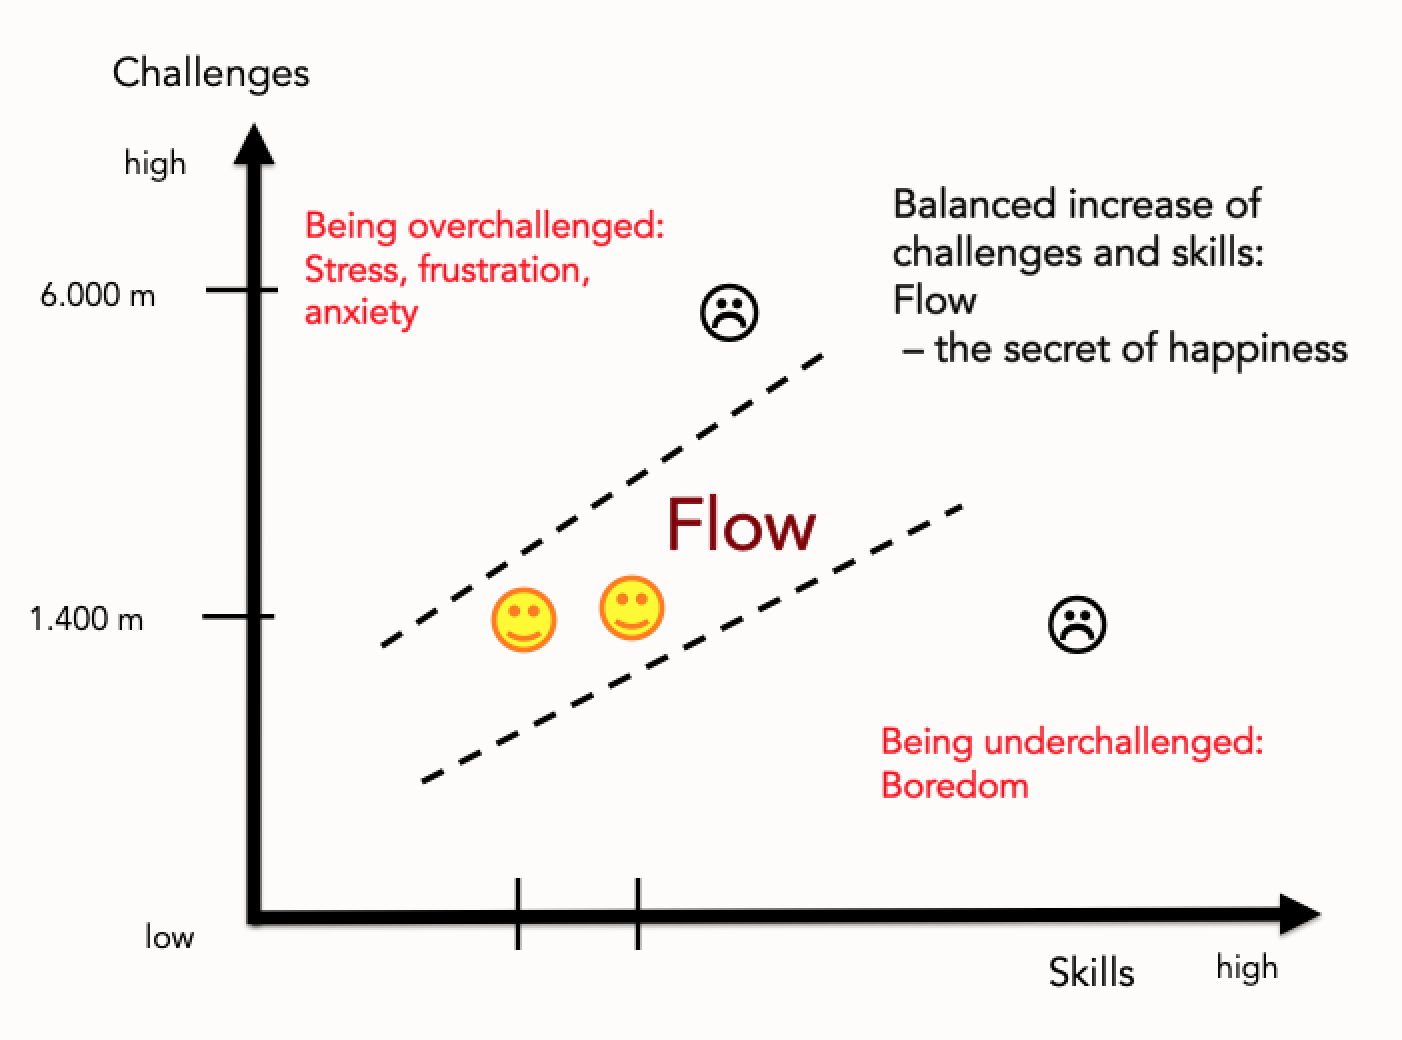 Flow picture:  Example of a mountaineer who, when climbing a 1,400 m high mountain, reaches exactly his performance limit and experiences FLOW. After some further training and successful ascents, suddenly he does not experience FLOW any more. His abilities have grown, and he has outgrown the balance between challenges and skills. However, if he then overtaxes himself and wants to climb a 6,000m peak in Nepal, for example, he fails because the challenge is too high